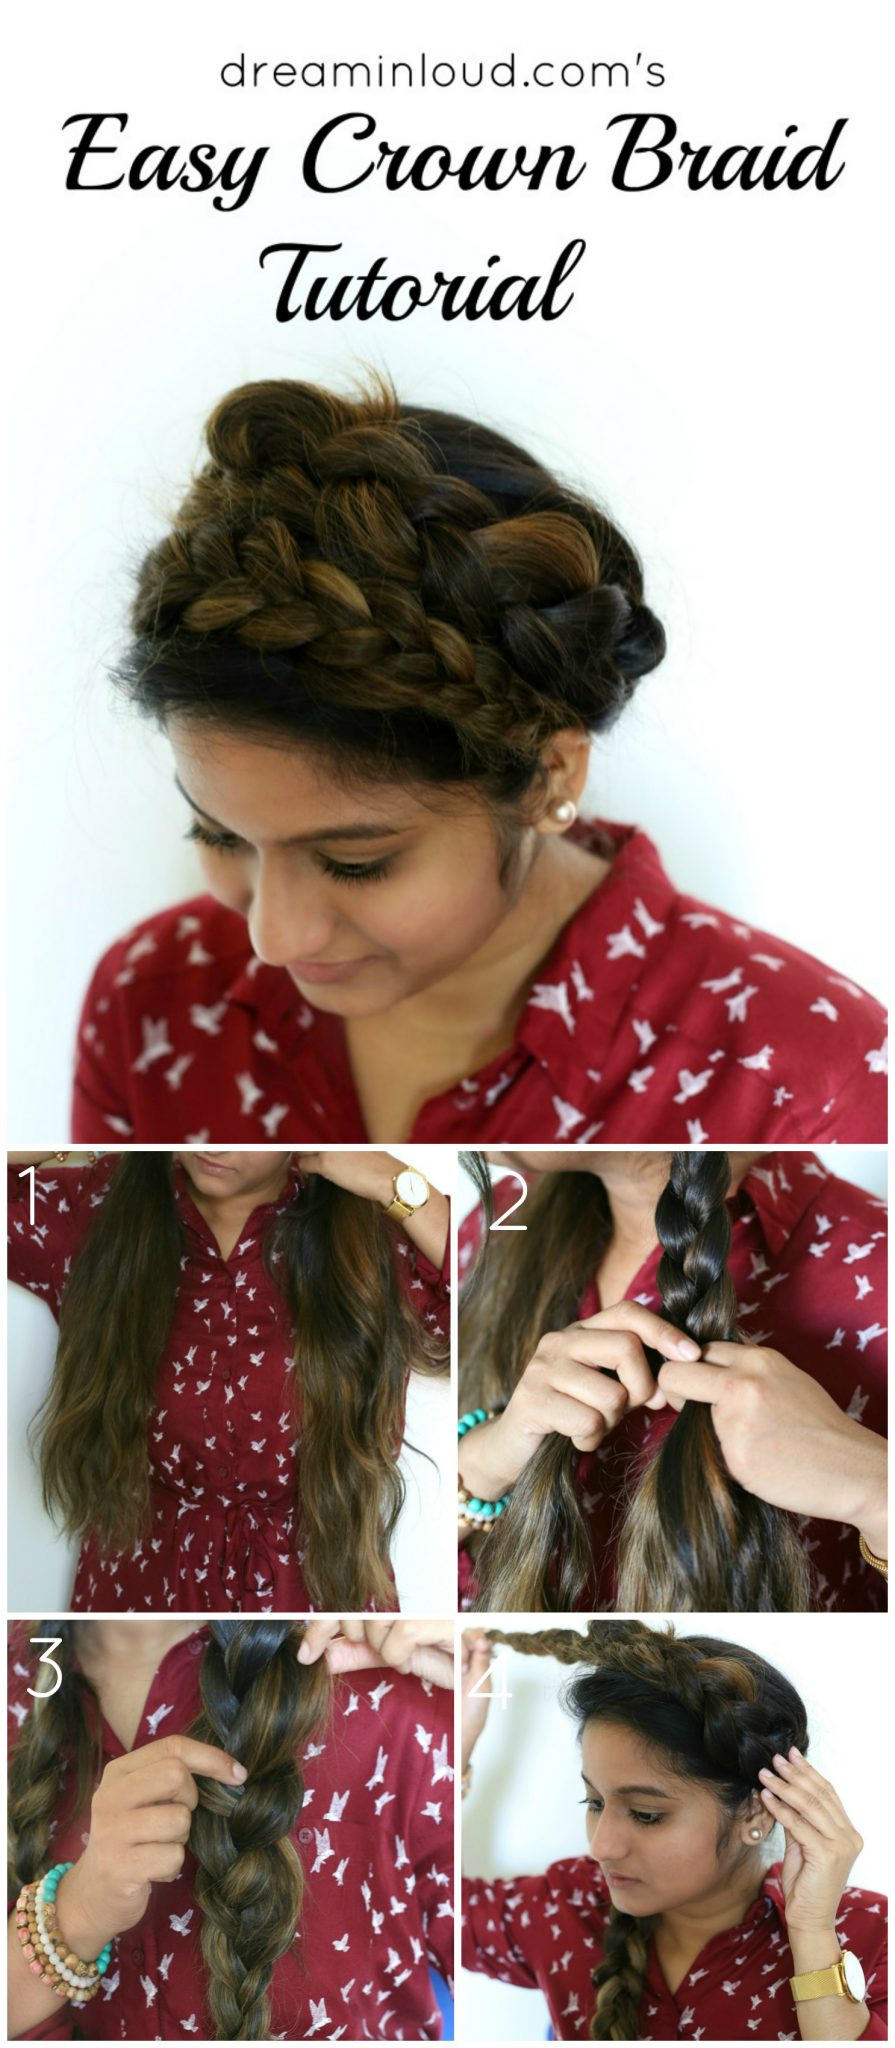 the-easy-crown-braid-tutorial-dreaming-loud-3 - Super Easy Crown Braid Tutorial featured by popular Ohio natural style blogger, Dreaming Loud